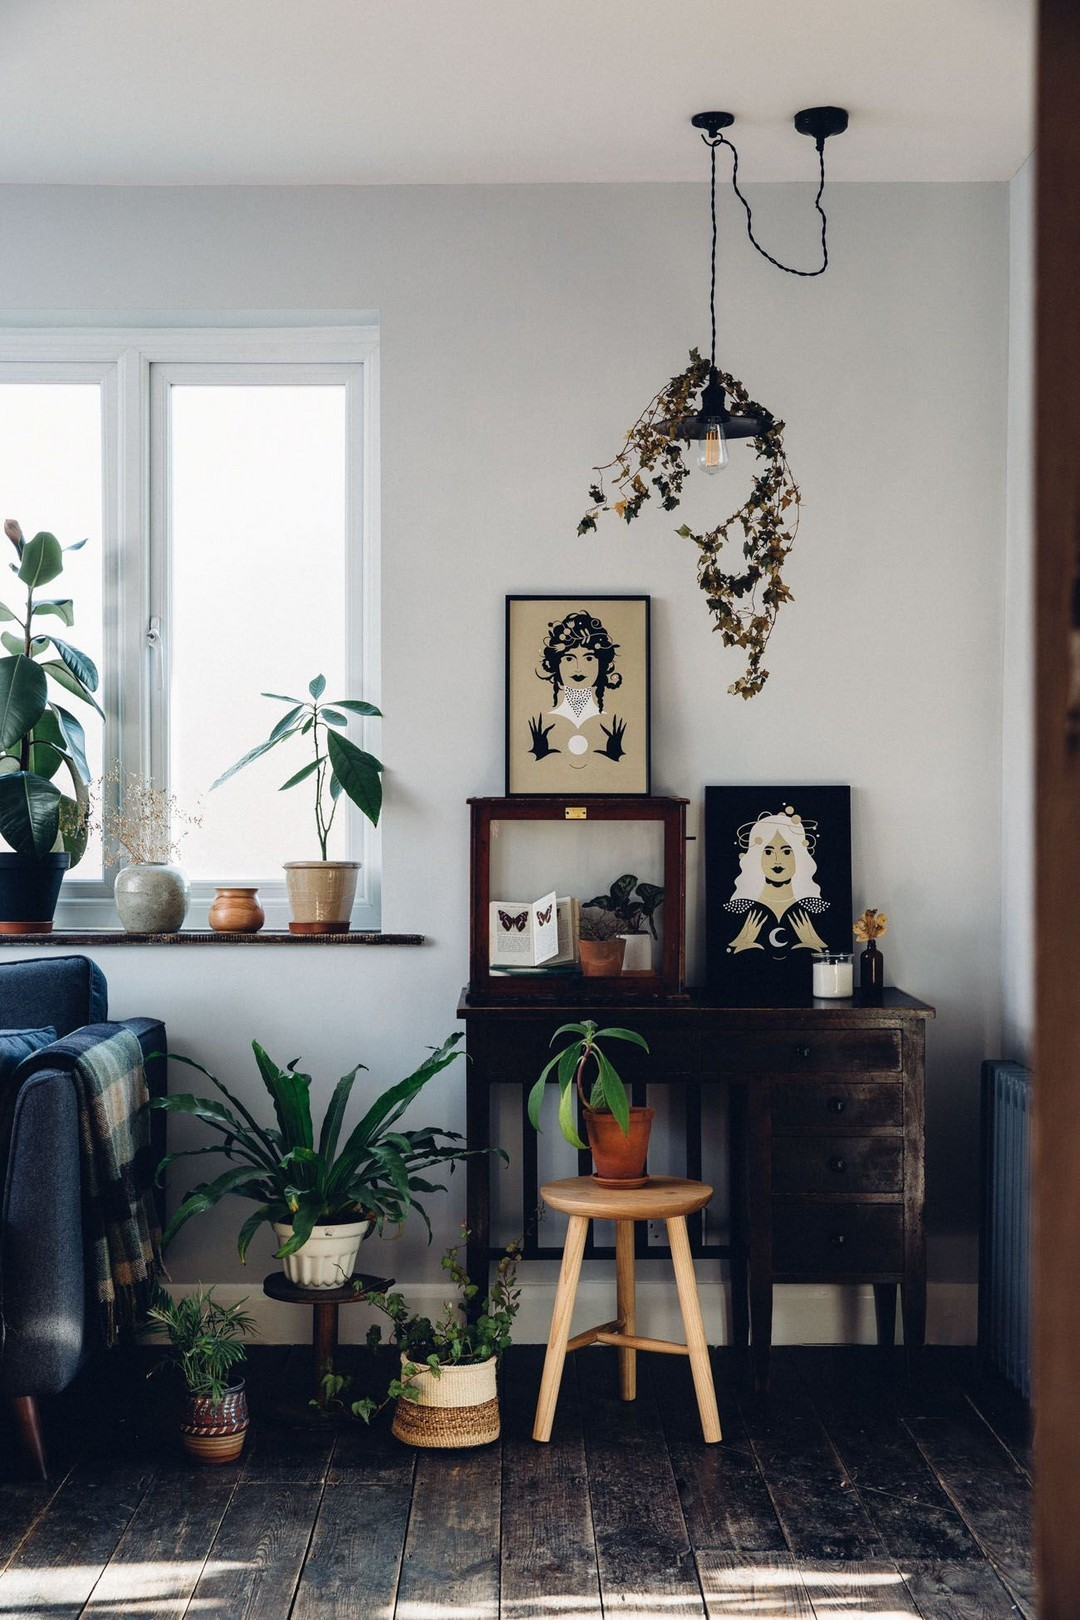 29 Best Diy Witchy Apartment Ideas To Get A Differing Look